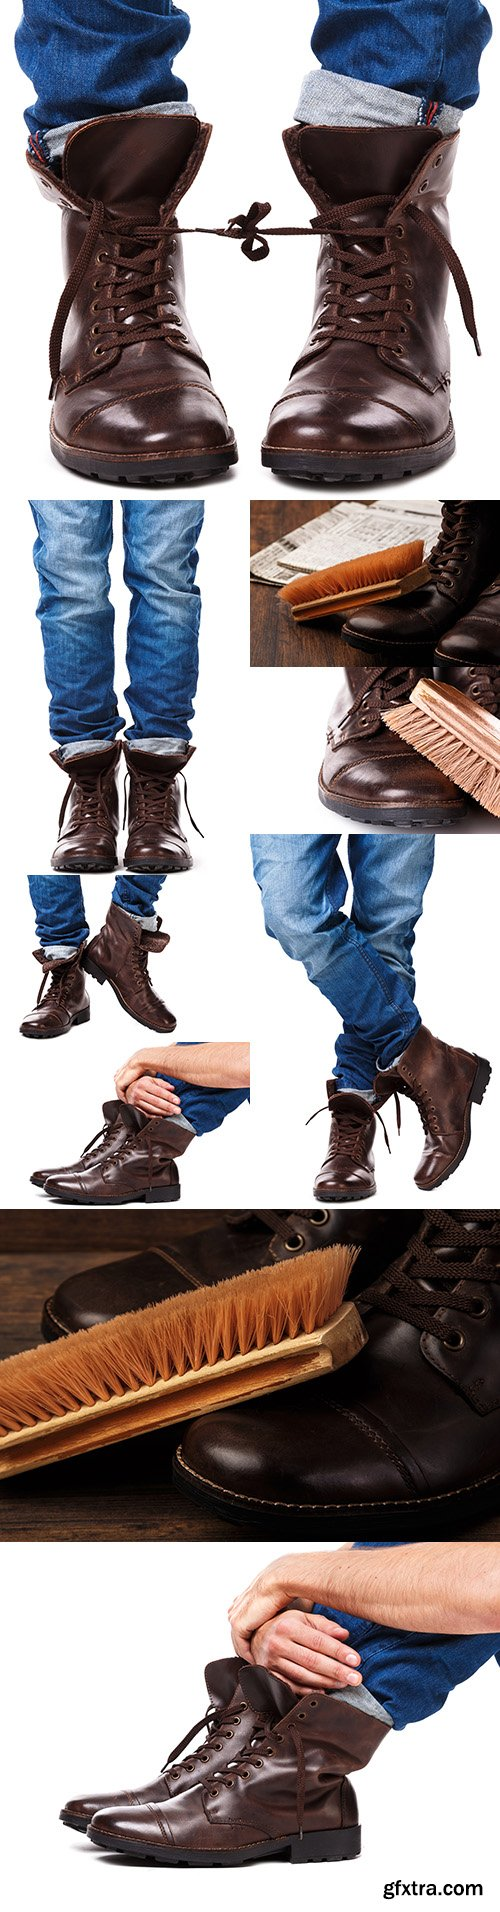 Men's jeans and leather boots modern clothing style